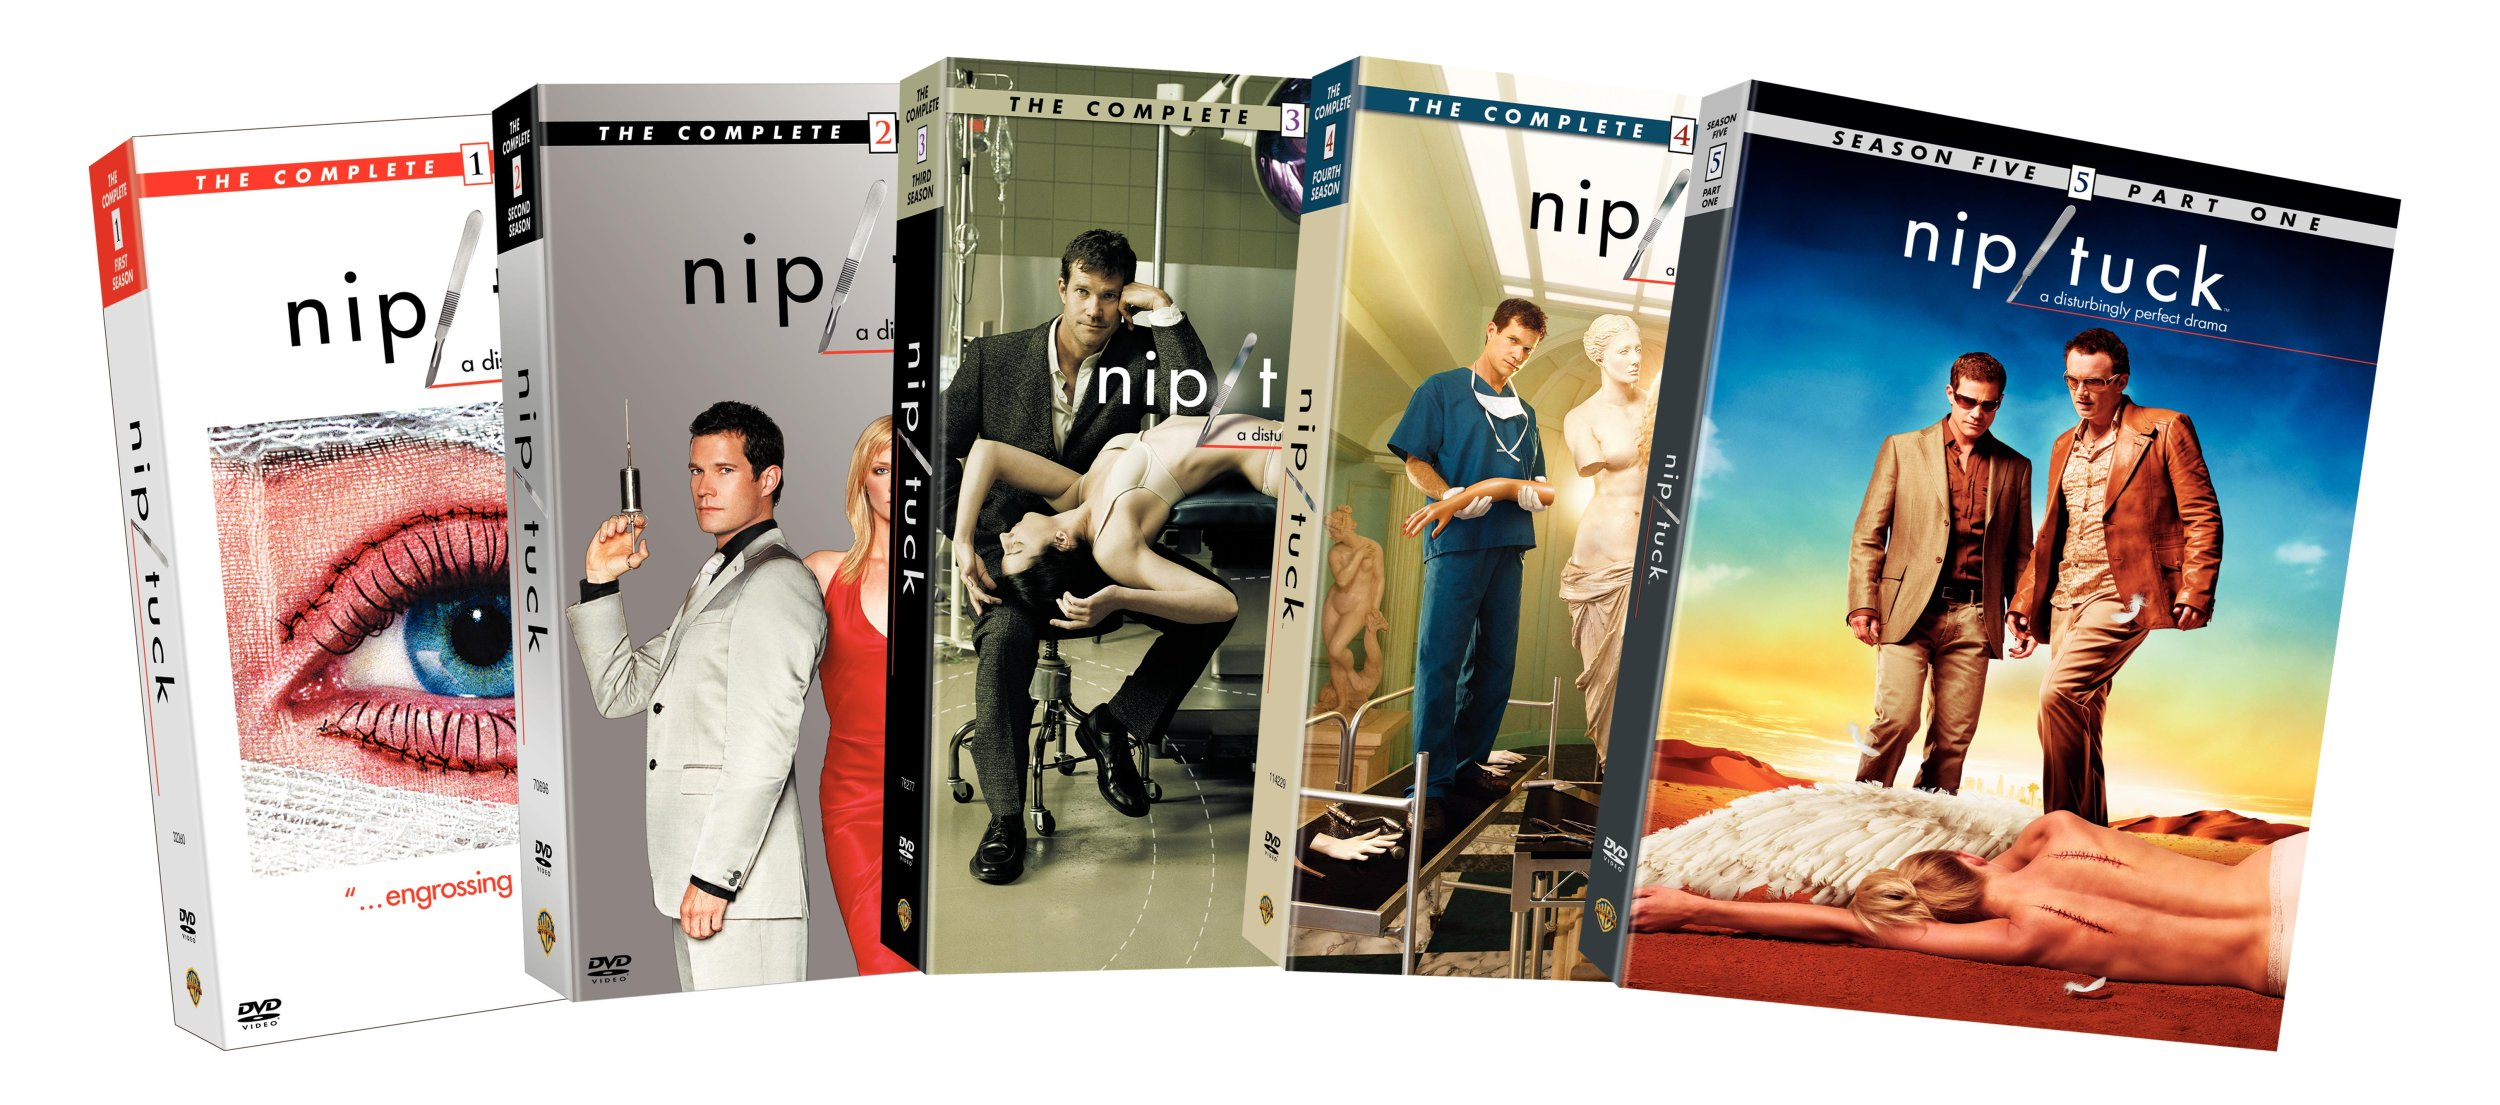 Nip/Tuck: The Complete Seasons 1-4 and Season 5, Part 1